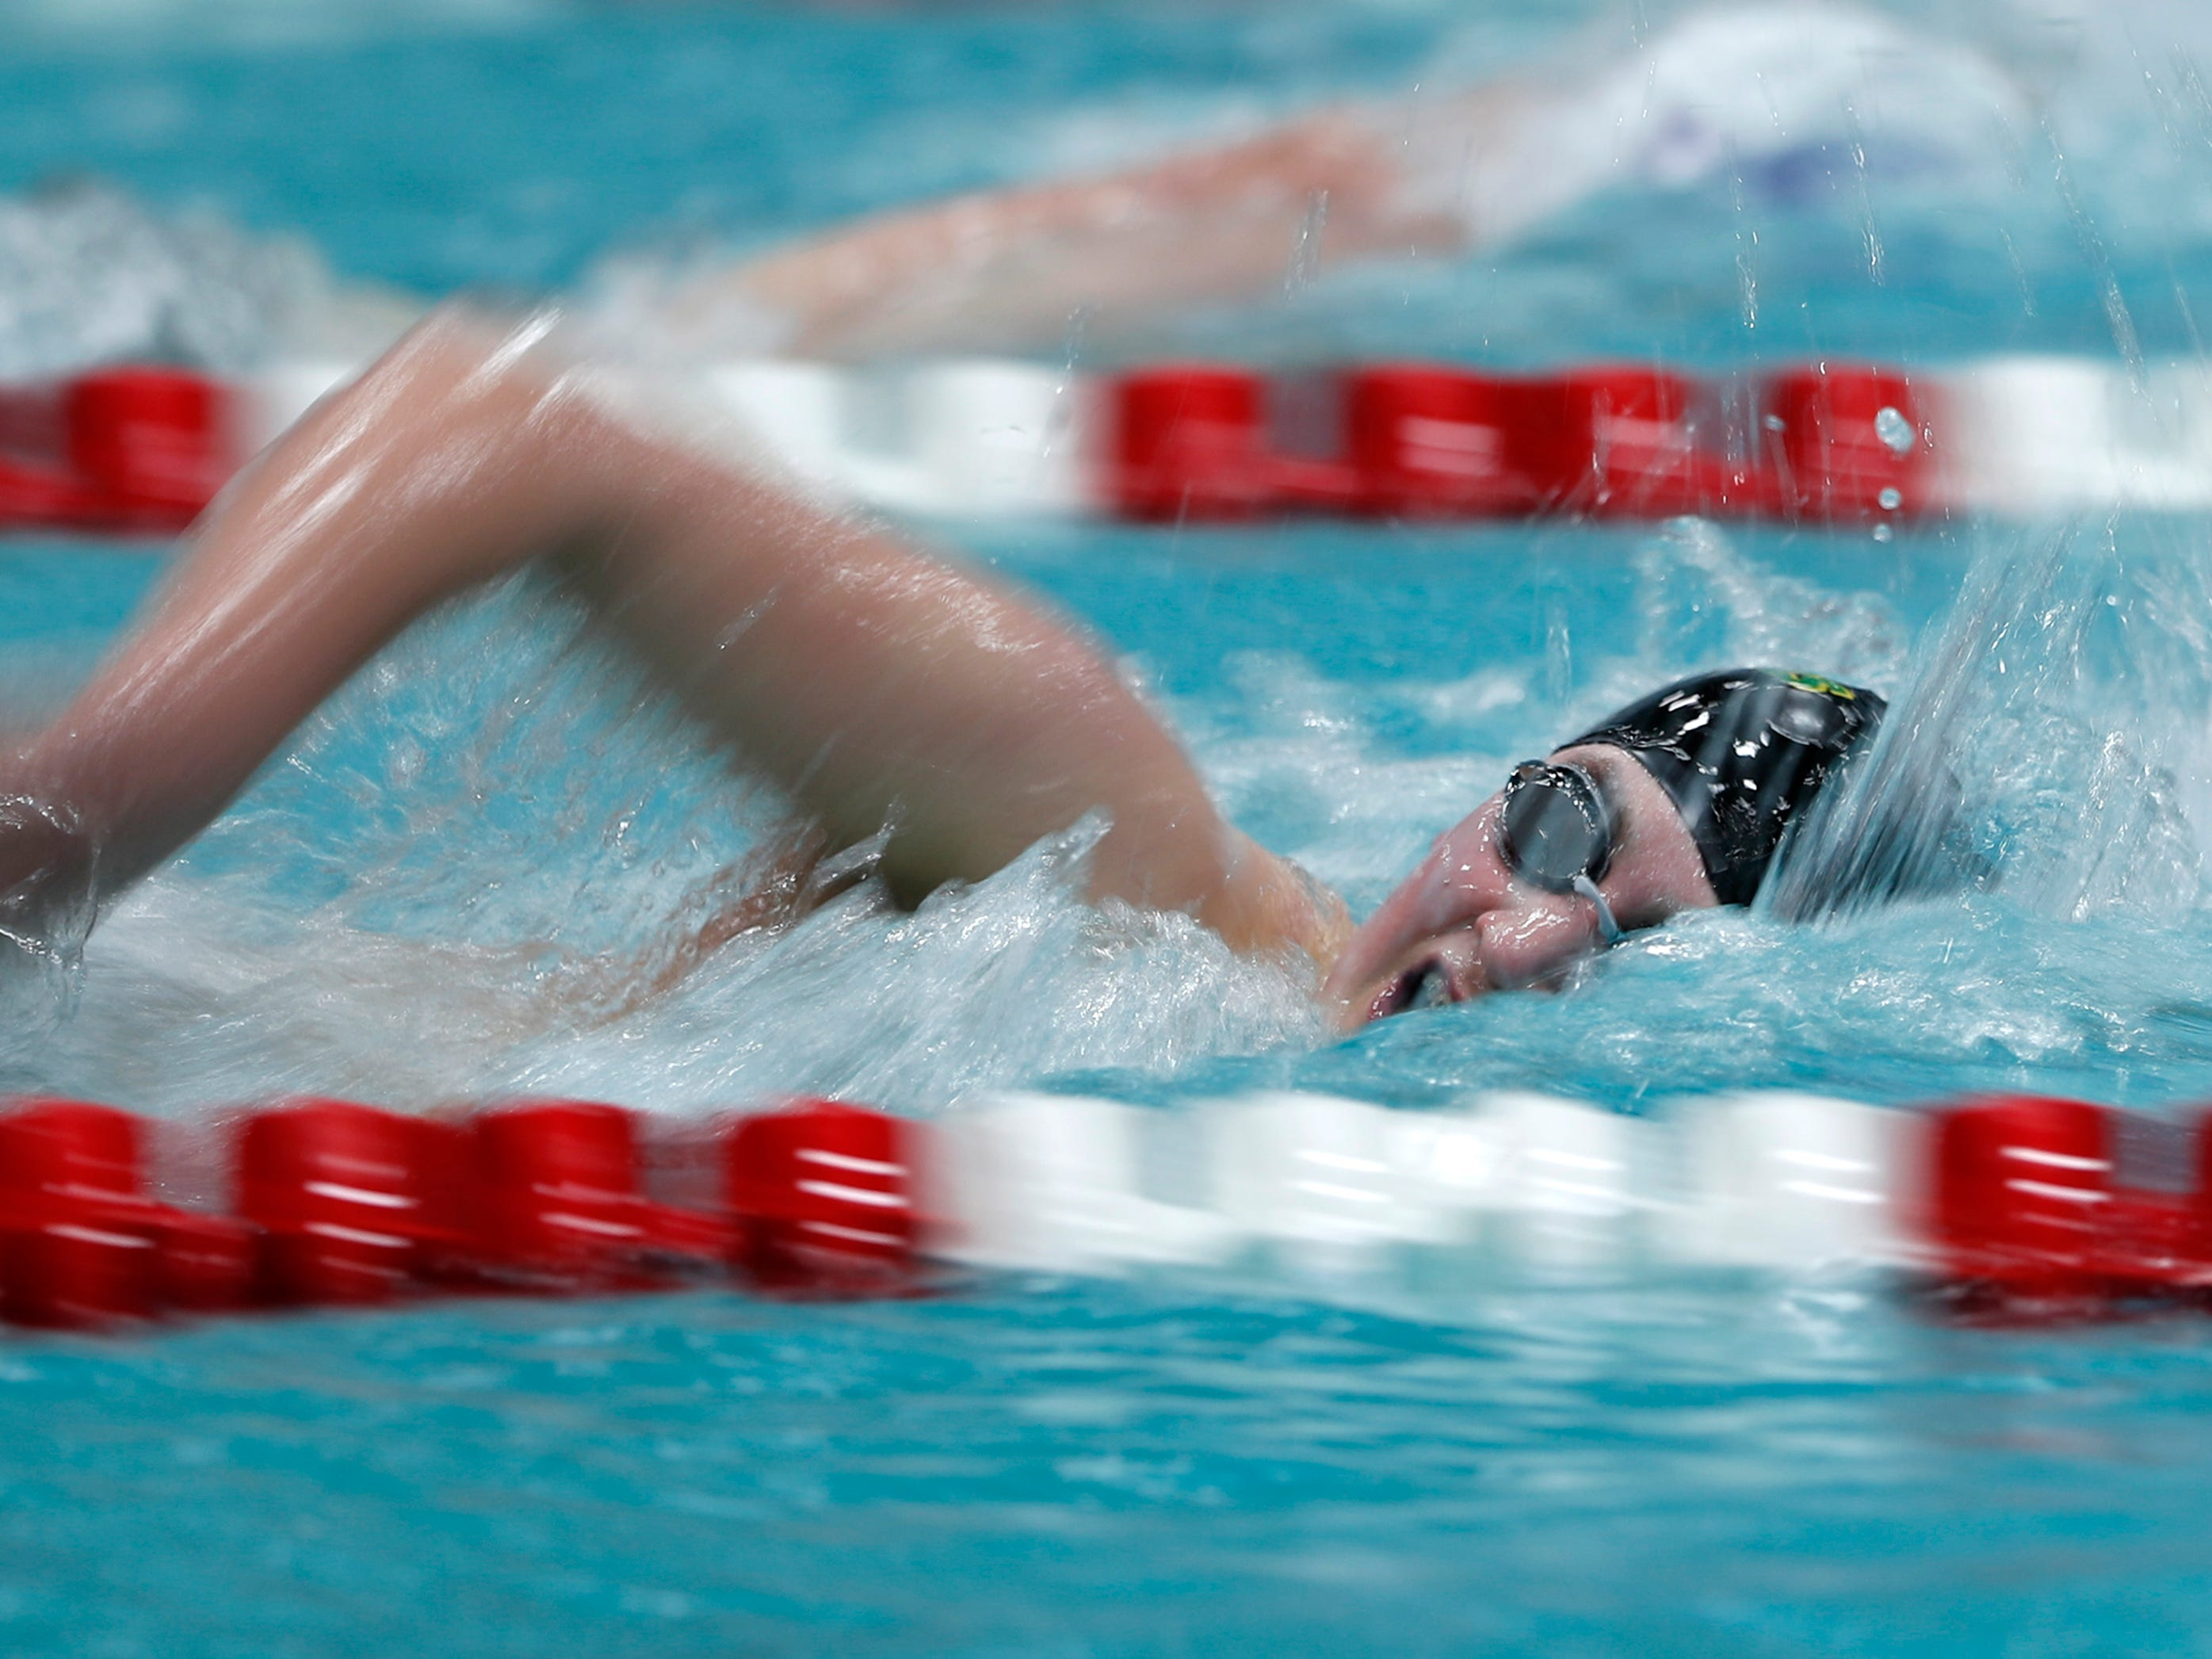 Ashwaubenon's Jackson Hodek competes in the 500-yard freestyle during the Division 2 2019 State Boys Swimming and Diving Championships Friday, Feb. 15, 2019, at the UW Natatorium in Madison, Wis.